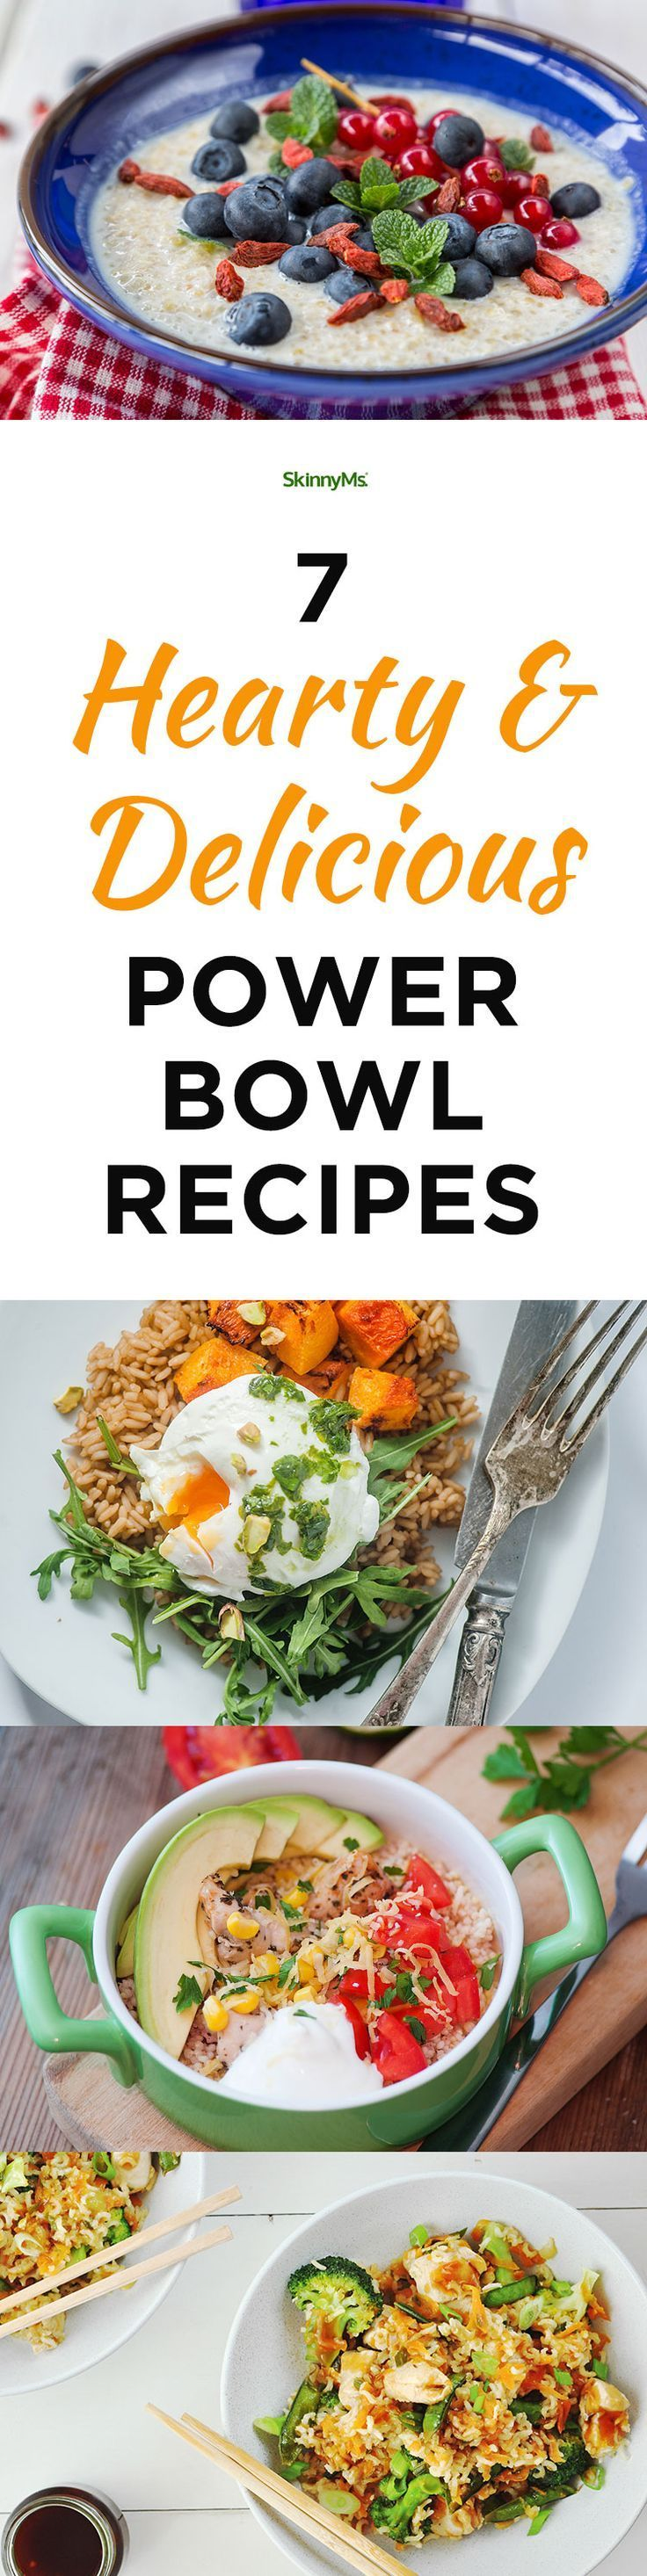 7 Hearty Delicious Power Bowl Recipes